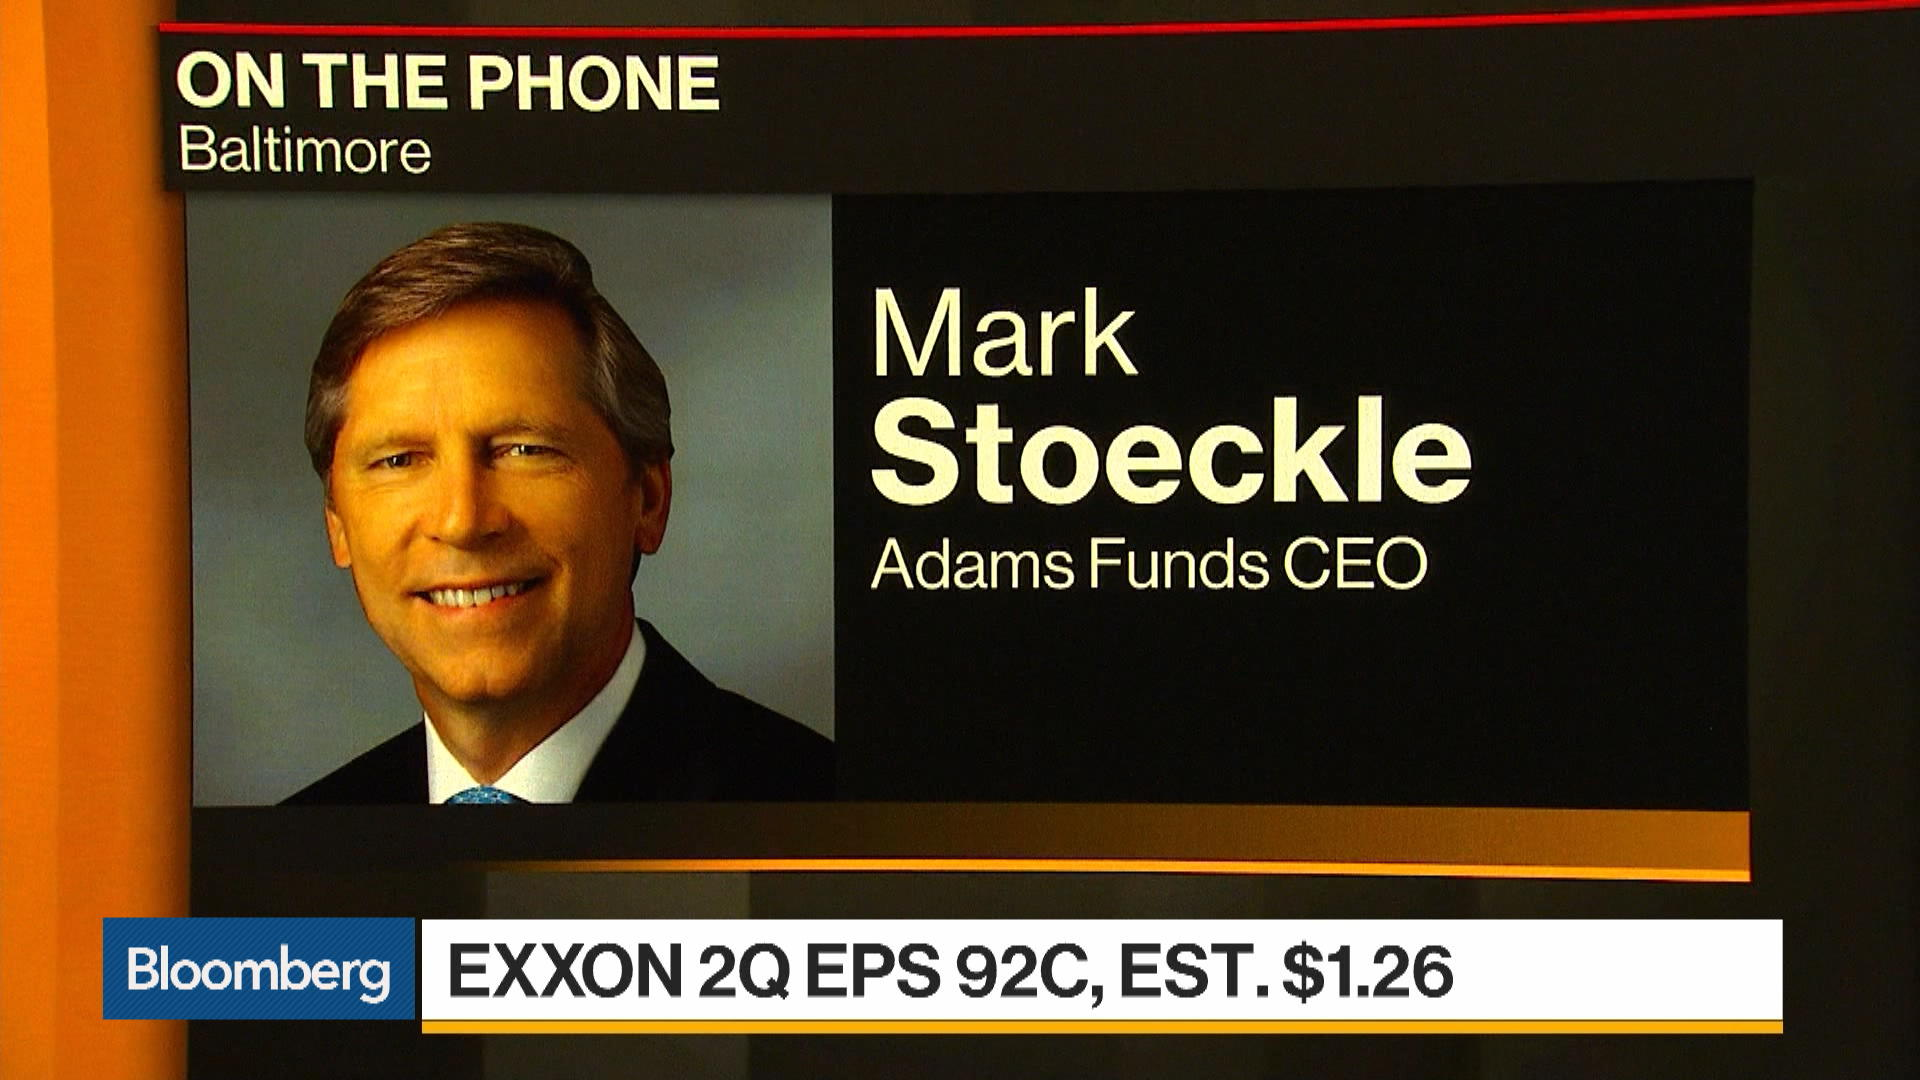 XOM:New York Stock Quote - Exxon Mobil Corp - Bloomberg Markets